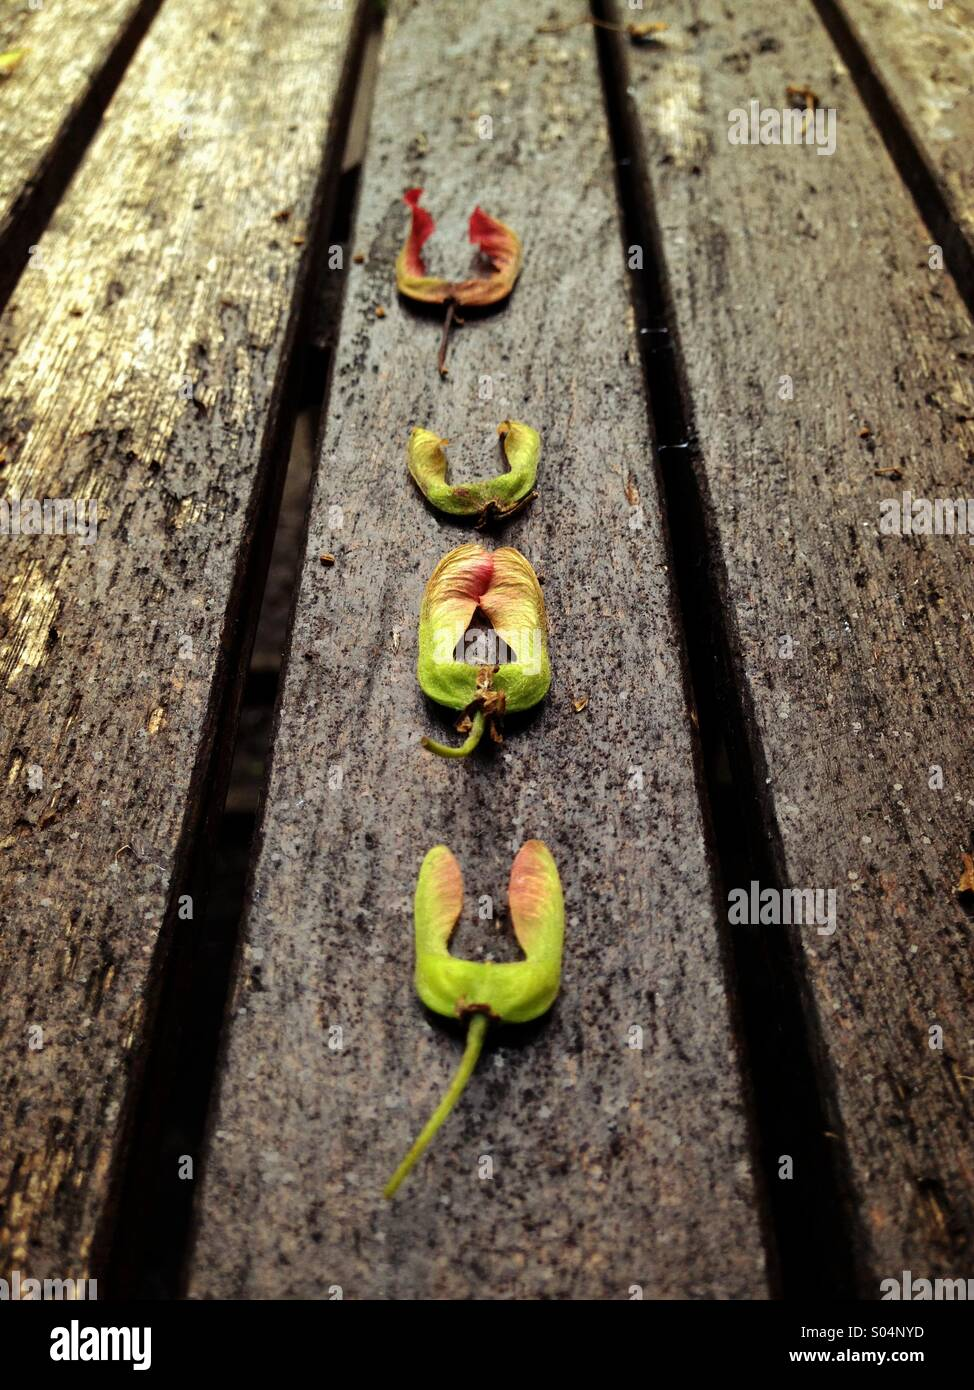 Four sycamore seeds line up on a picnic table. - Stock Image